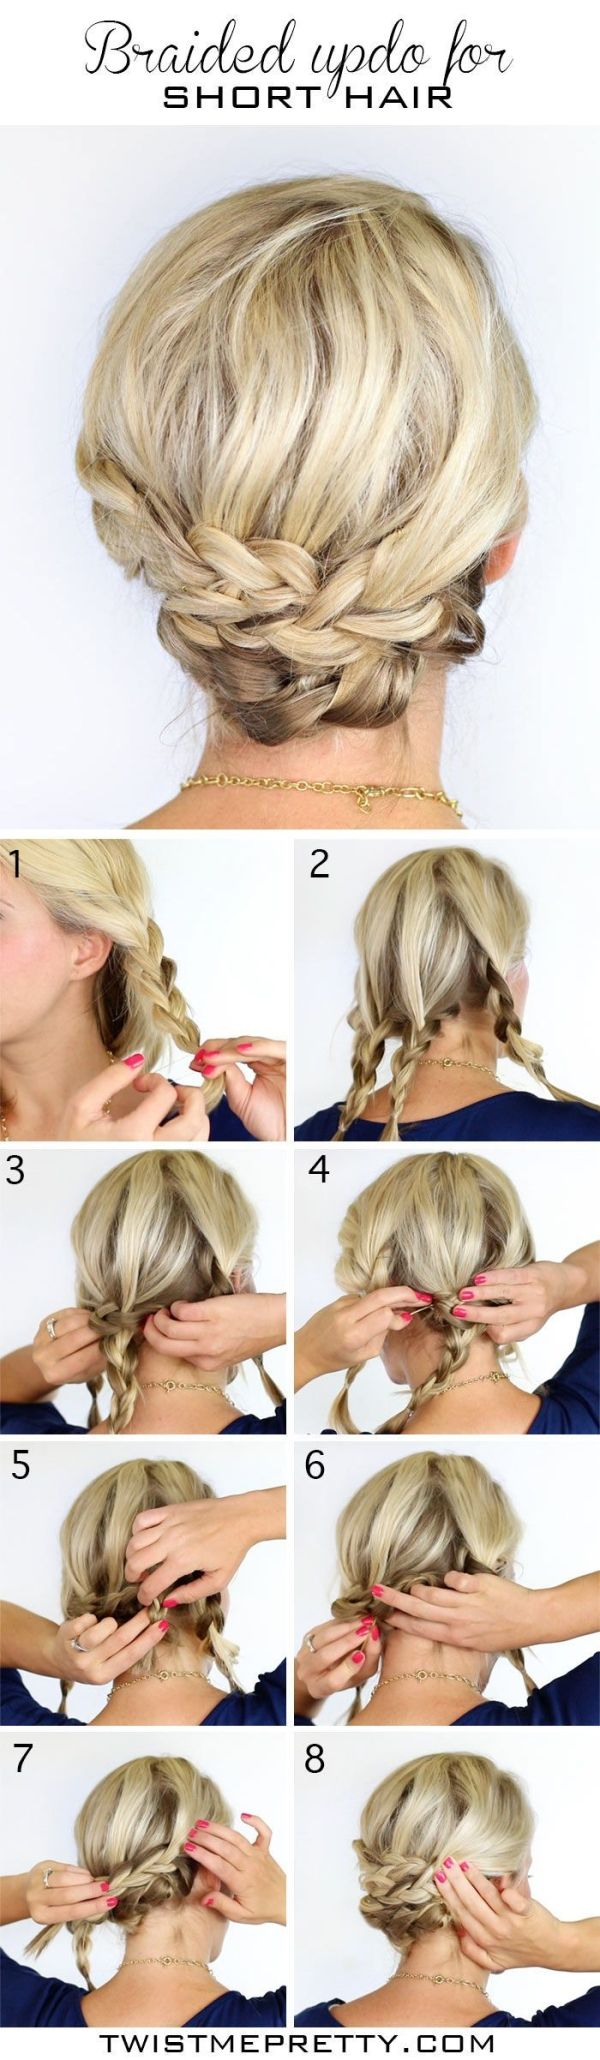 Braided updo hairstyle for short hair by angie beauty ideas